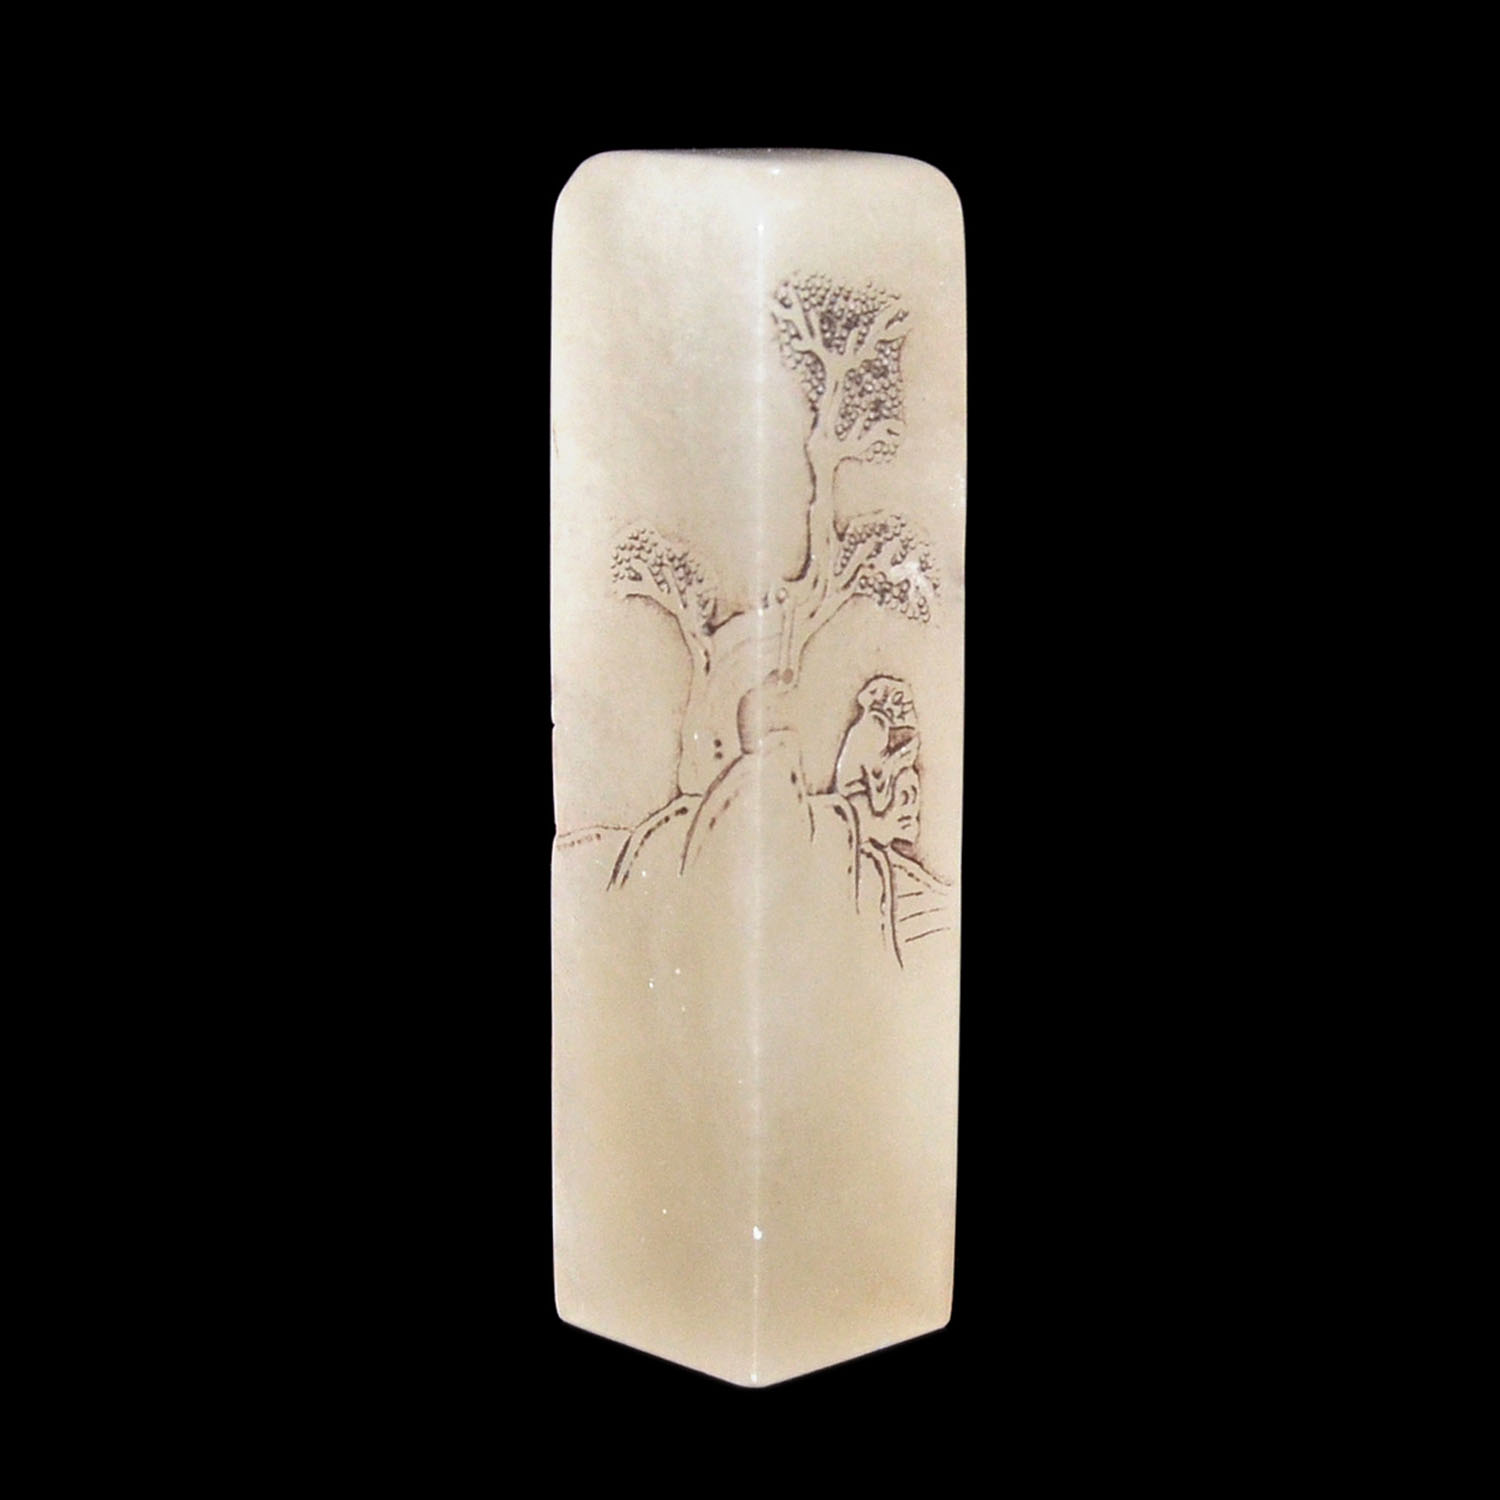 Lot 35 - 芙蓉石荔枝凍浮雕林下高士方章 Translucent Furong Stone Columnar Seal Carved with Scholar  Height: 4⅞ in (12.4 cm)